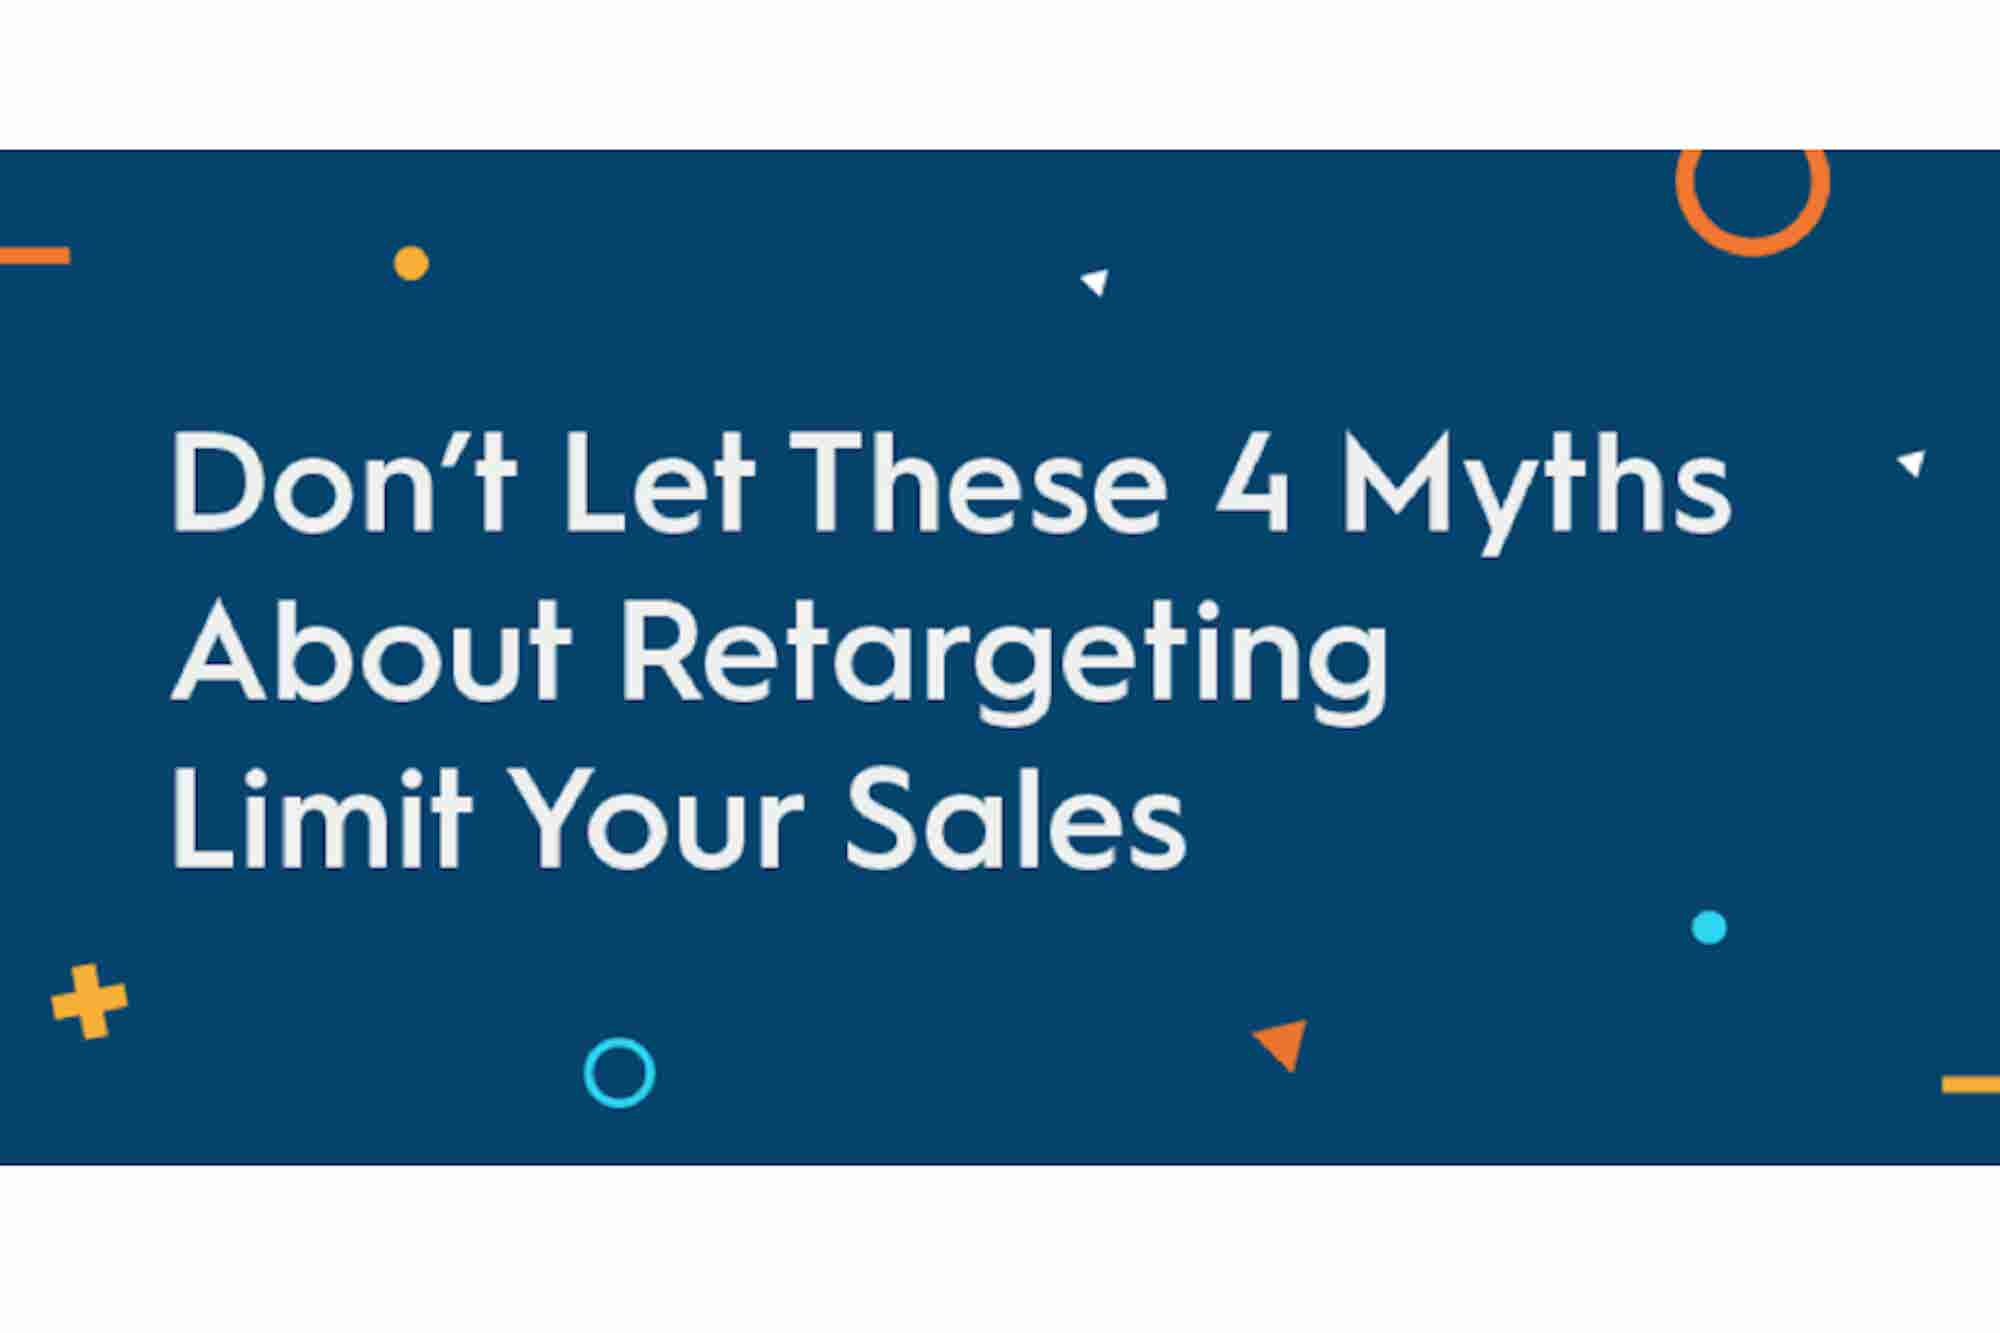 Don't Let These 4 Myths About Retargeting Limit Your Sales